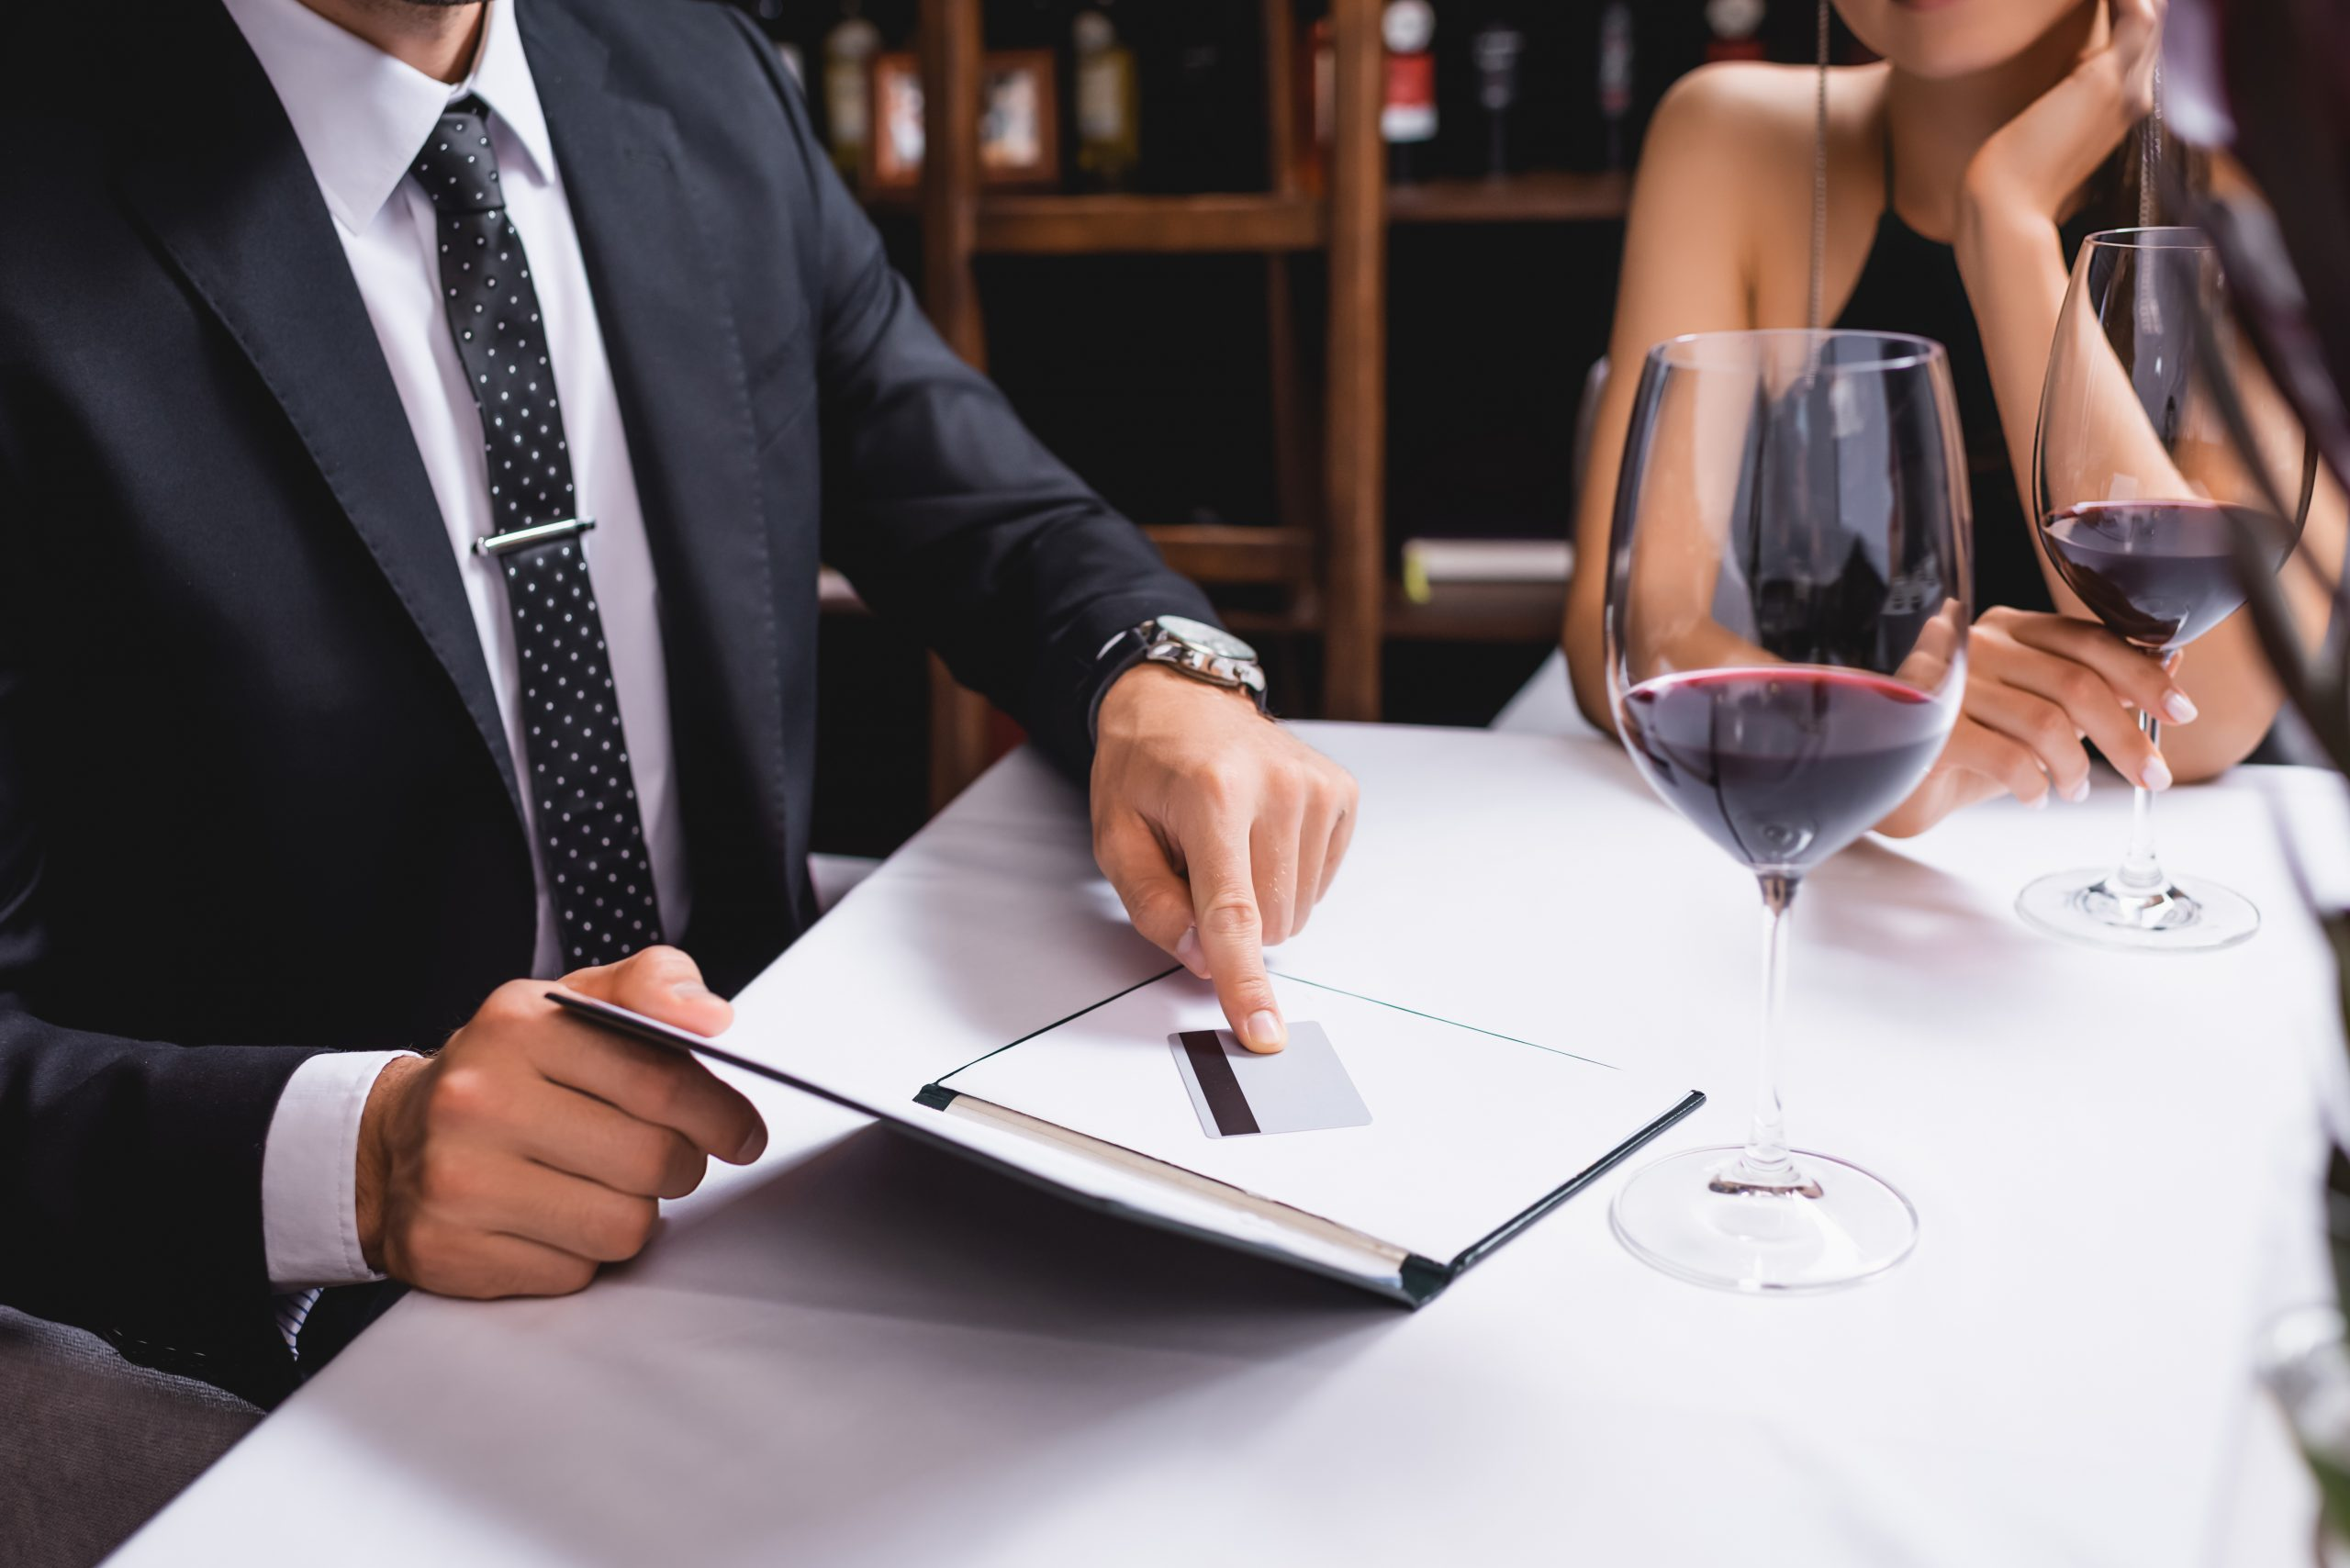 Cropped view of man putting credit card in restaurant bill near glasses of wine and girlfriend